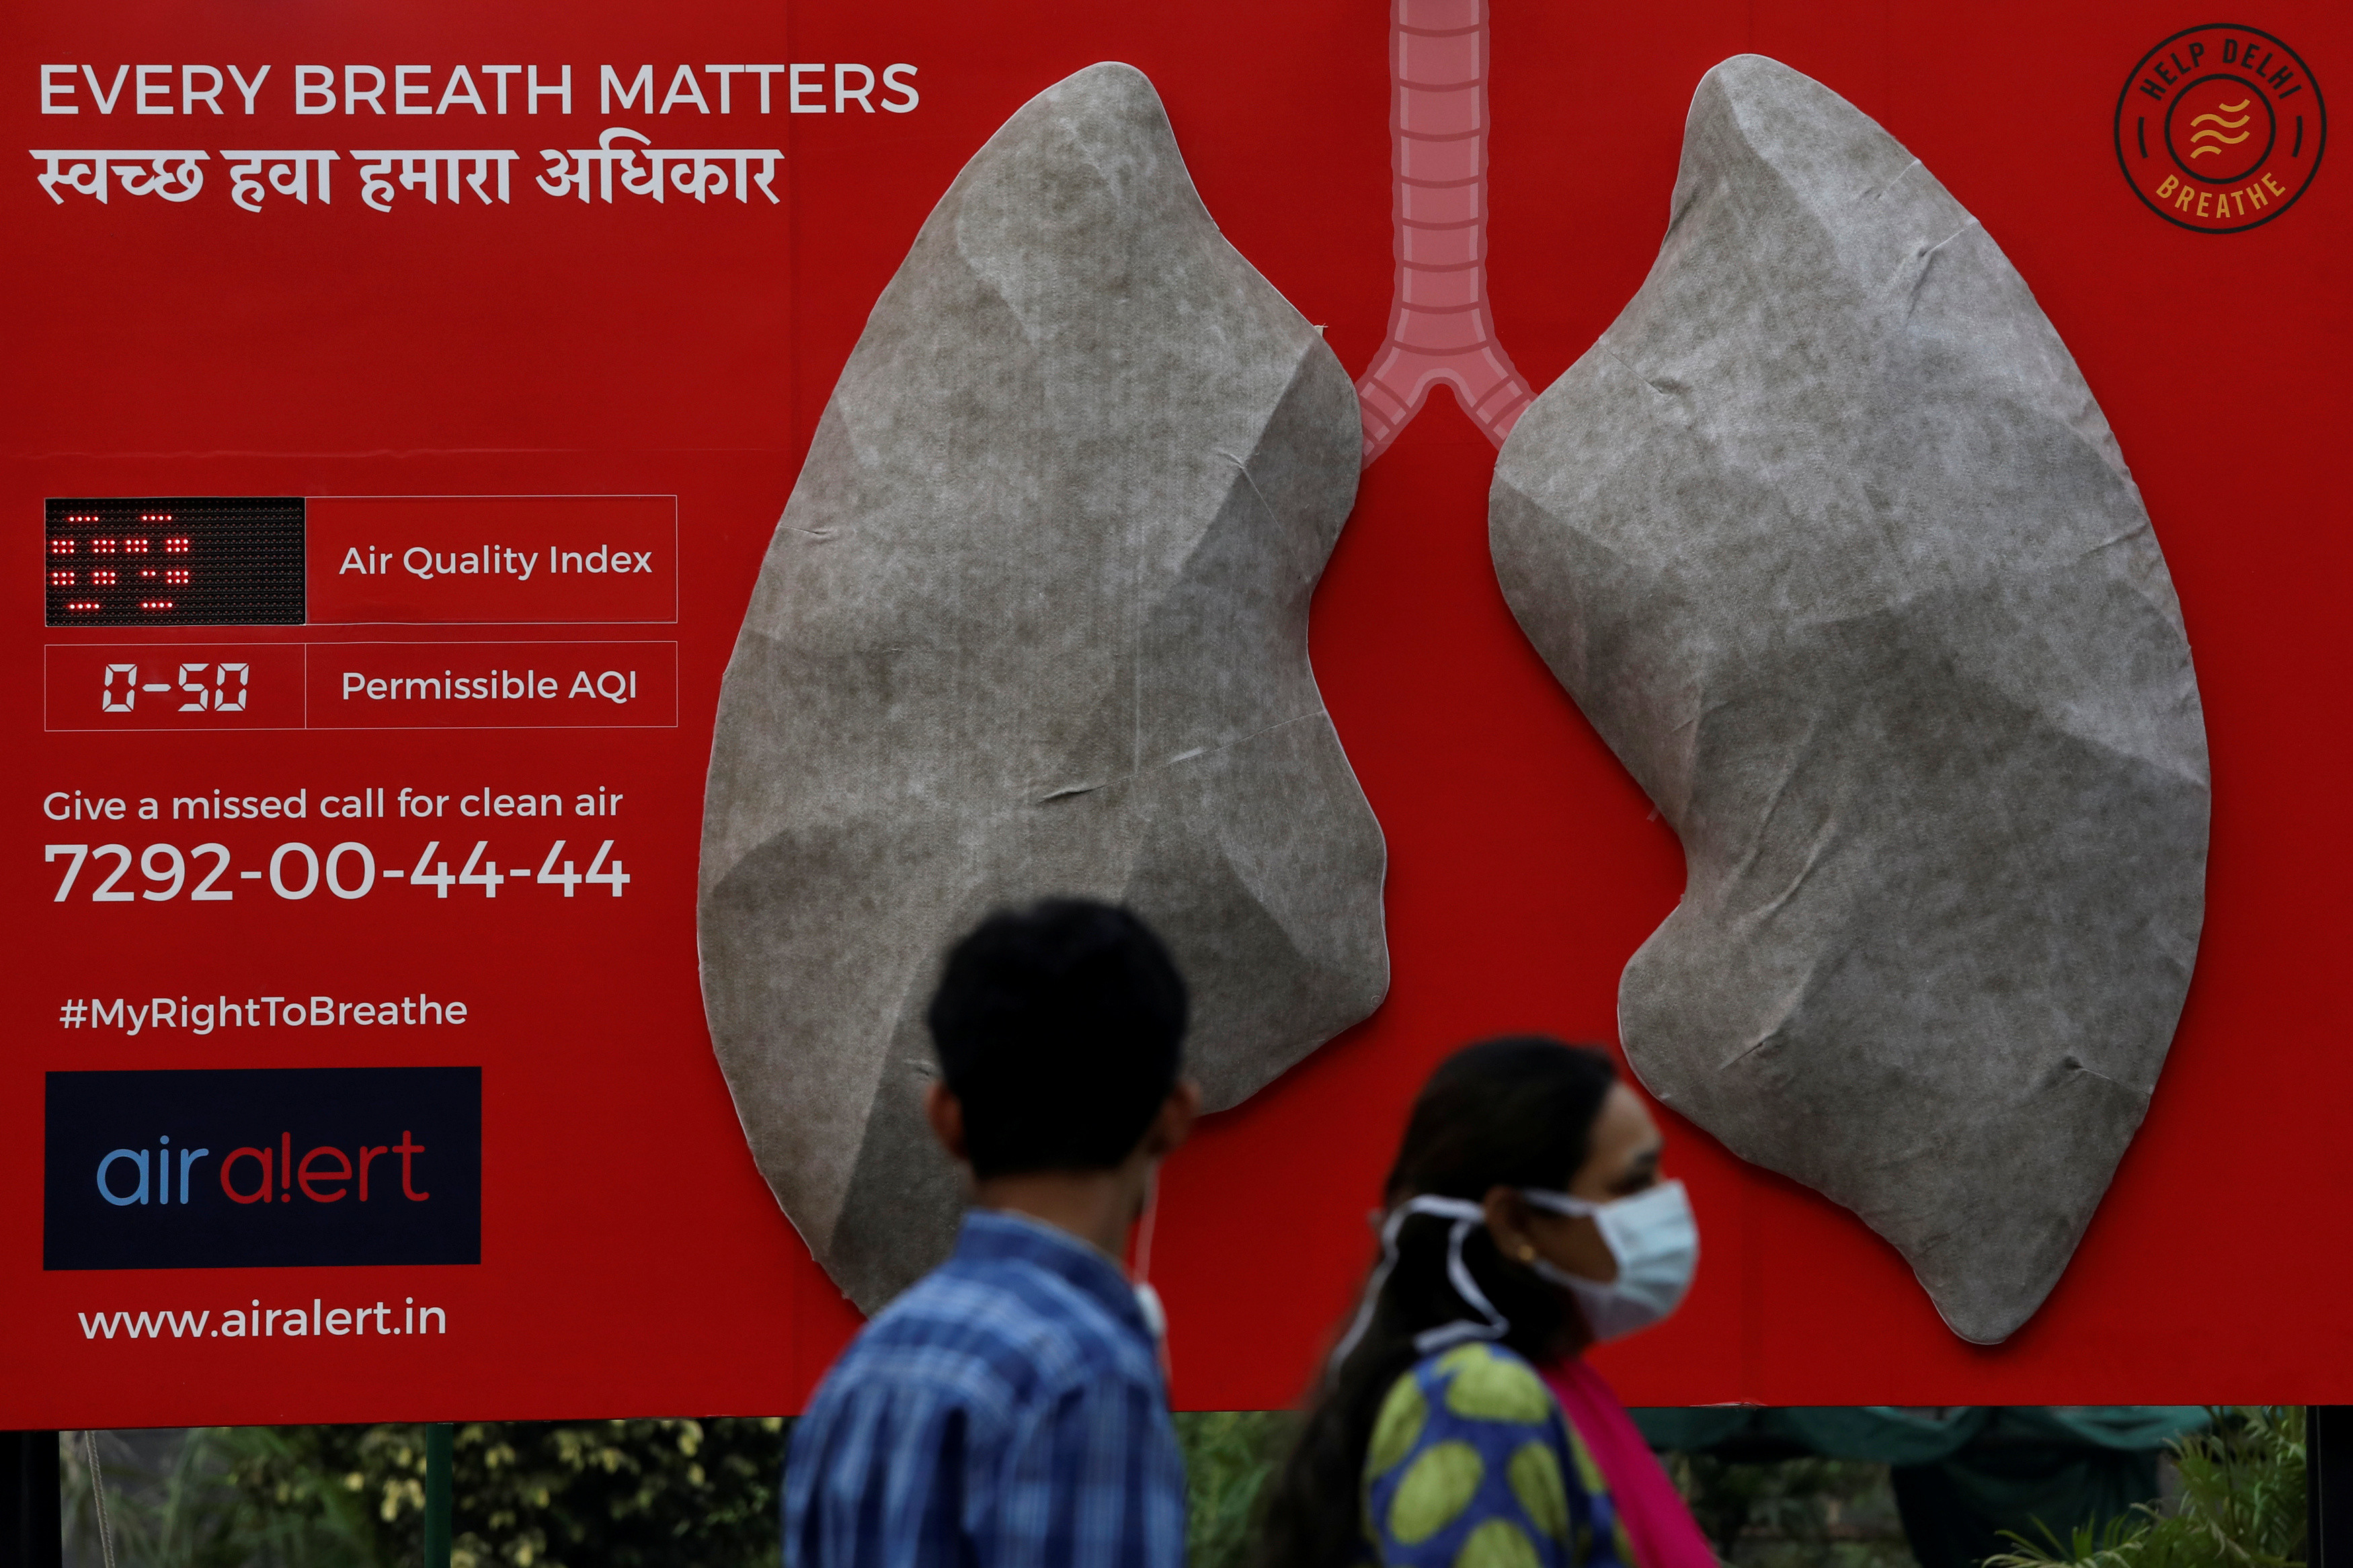 An artificial model of lungs illustrating the effect of air pollution in New Delhi